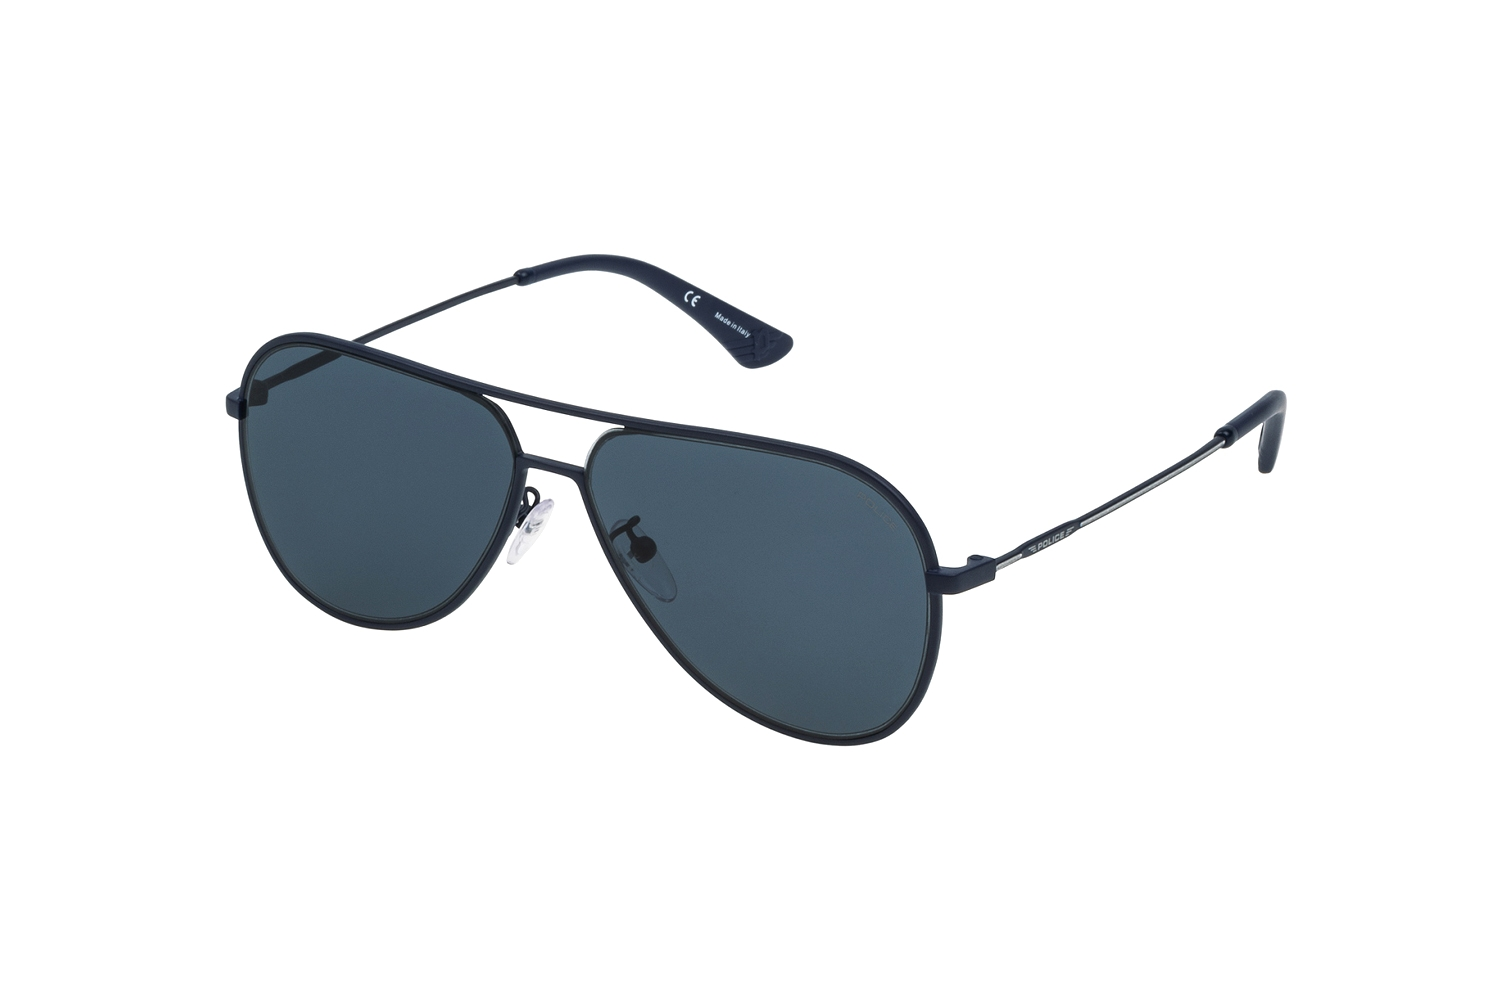 Police Highway Two 1 SPL359 1HLB Sonnenbrille in blu notte opaco 59/13 kUYwn